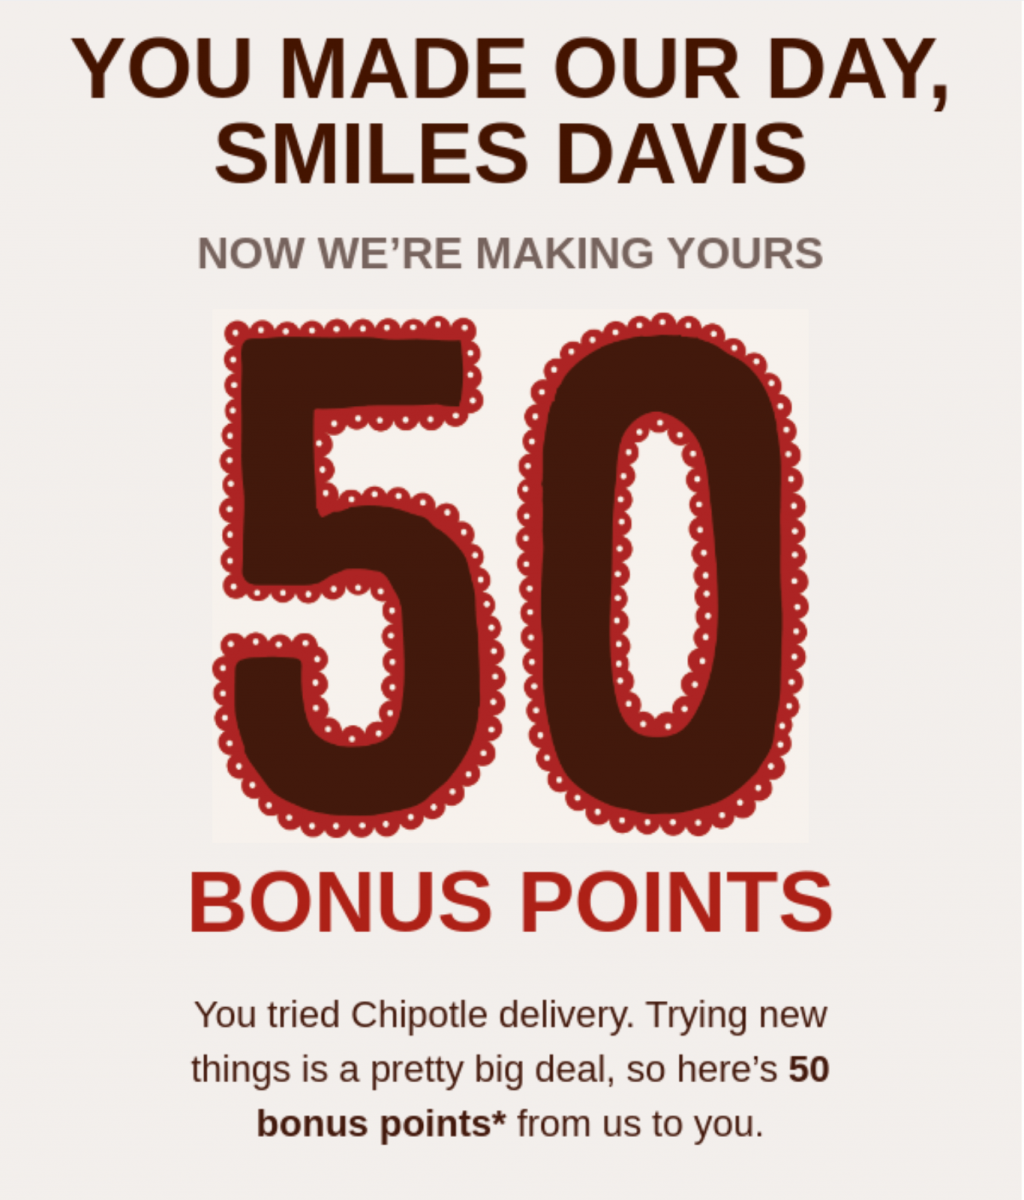 Chipotle points